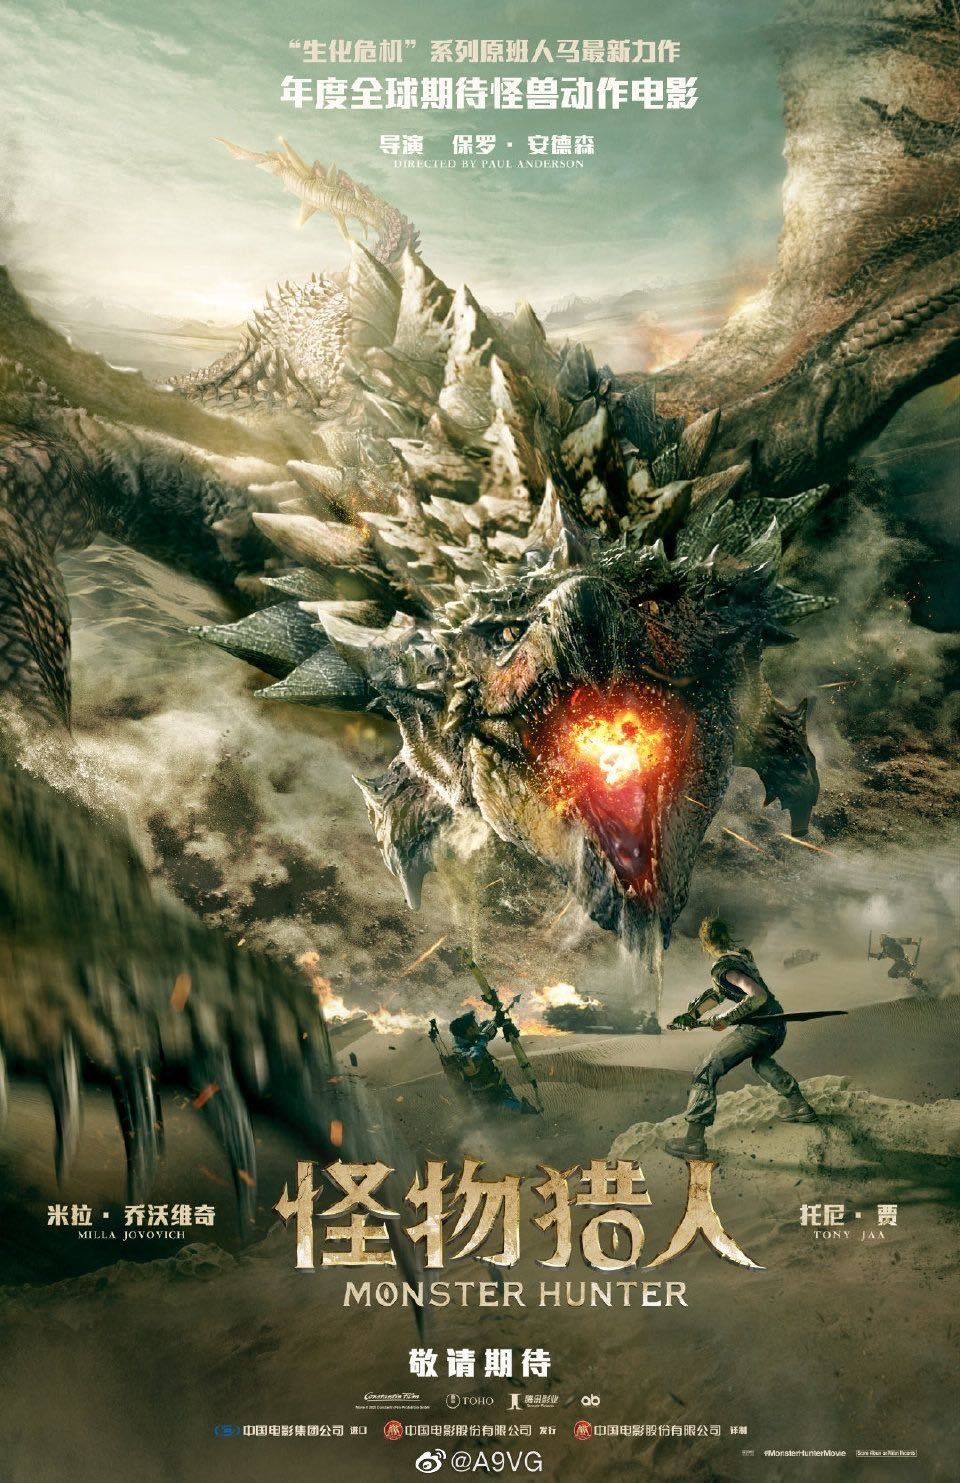 Brand New 'Monster Hunter' Poster Breathes Fire Ahead of Theatrical Release in China